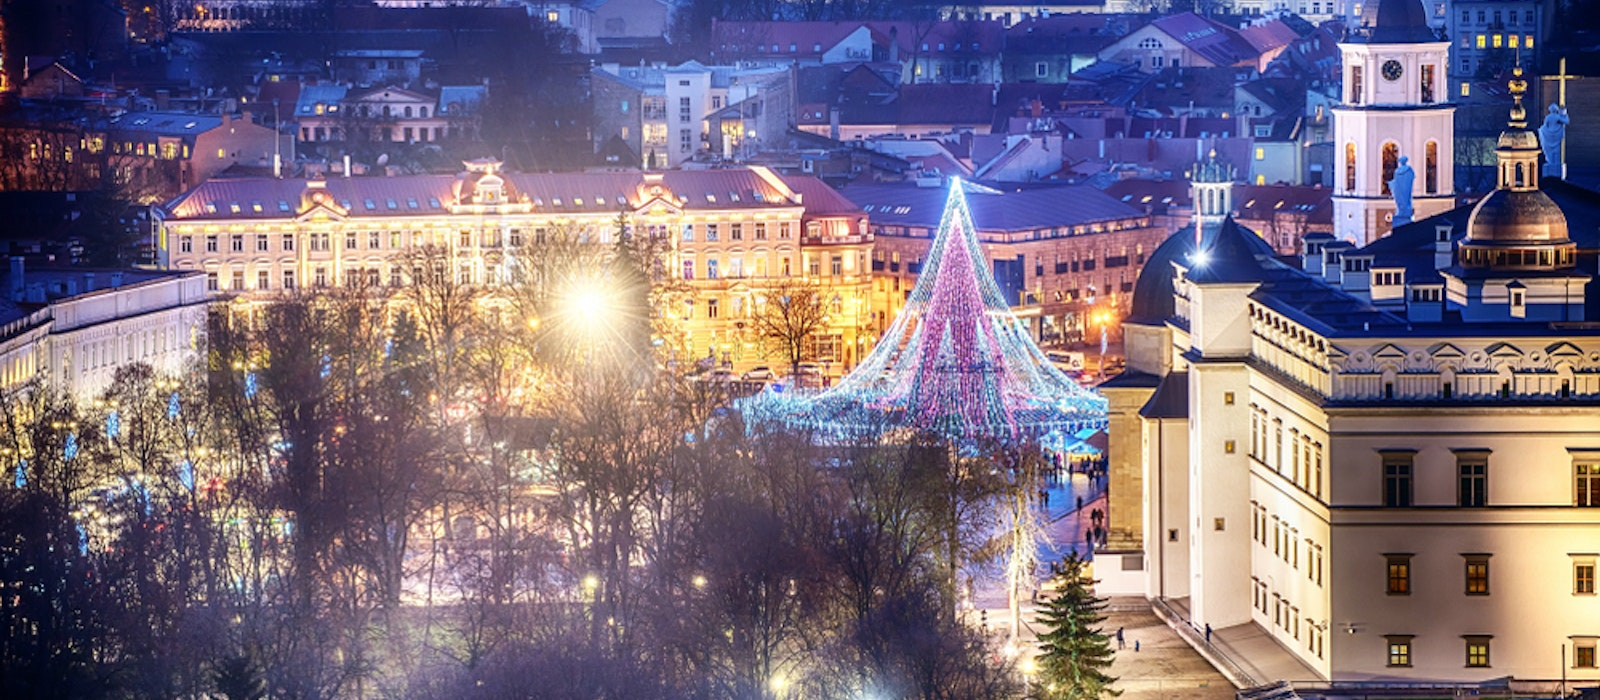 original hero vilnius lithuania christmasjpg1539655120ixlibrails 03 - Best Christmas Destinations